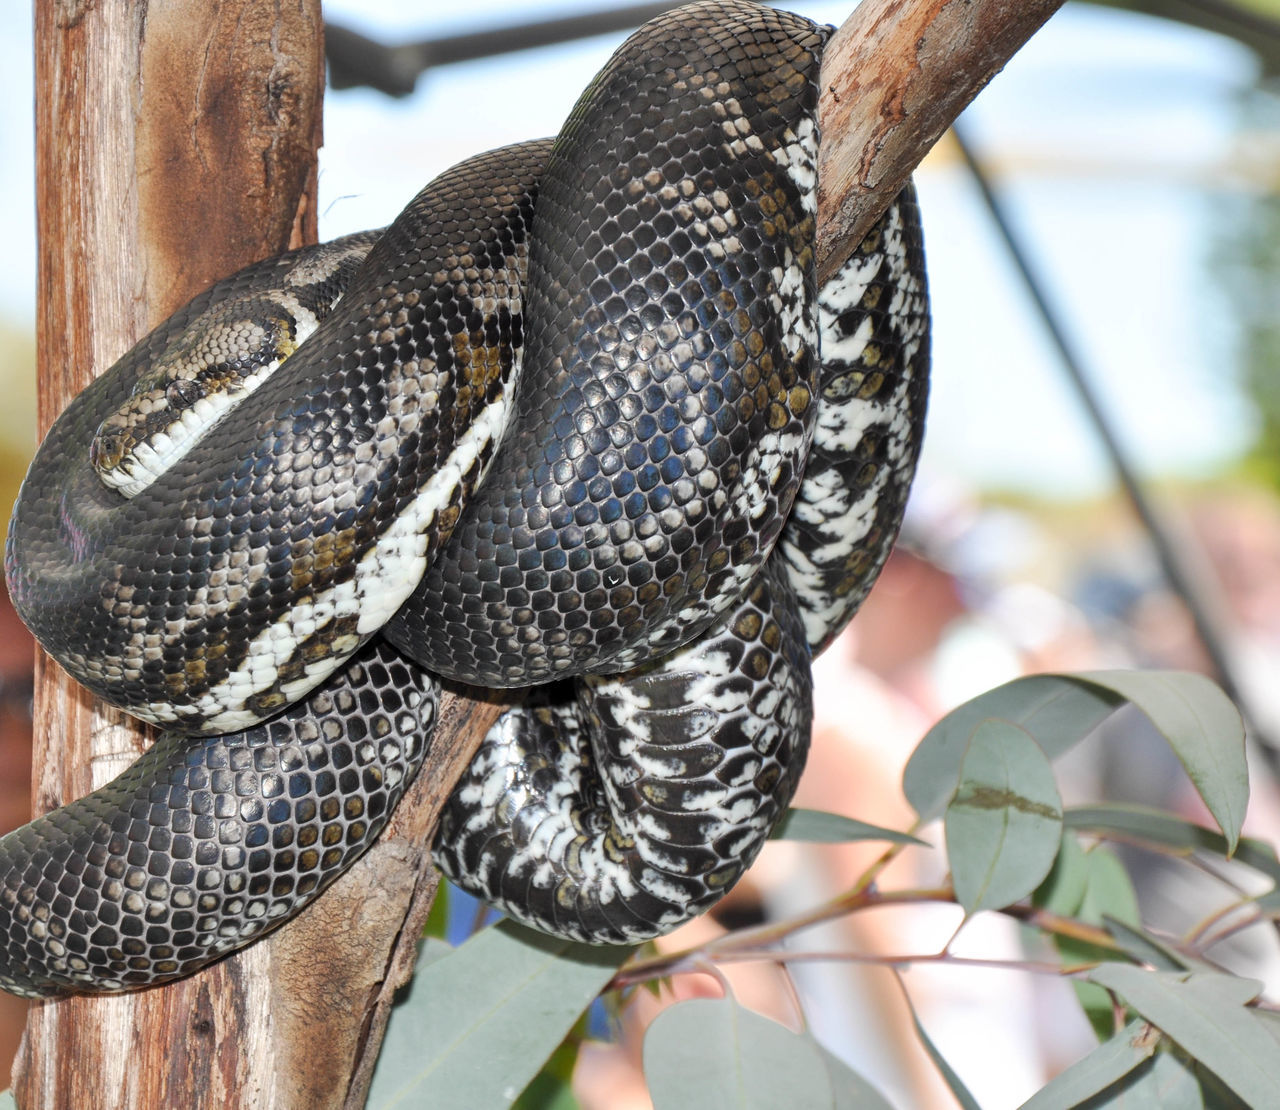 Large python coiled around tree branch in Coogee, Western Australia. Animal Animal Themes Animal Wildlife Animals In The Wild Brown Close-up Coiled Cream Curled Up Day Design Glossy Large Nature No People One Animal Outdoors Pattern Python Reptile Scales Skin Textured  Tree Wildlife